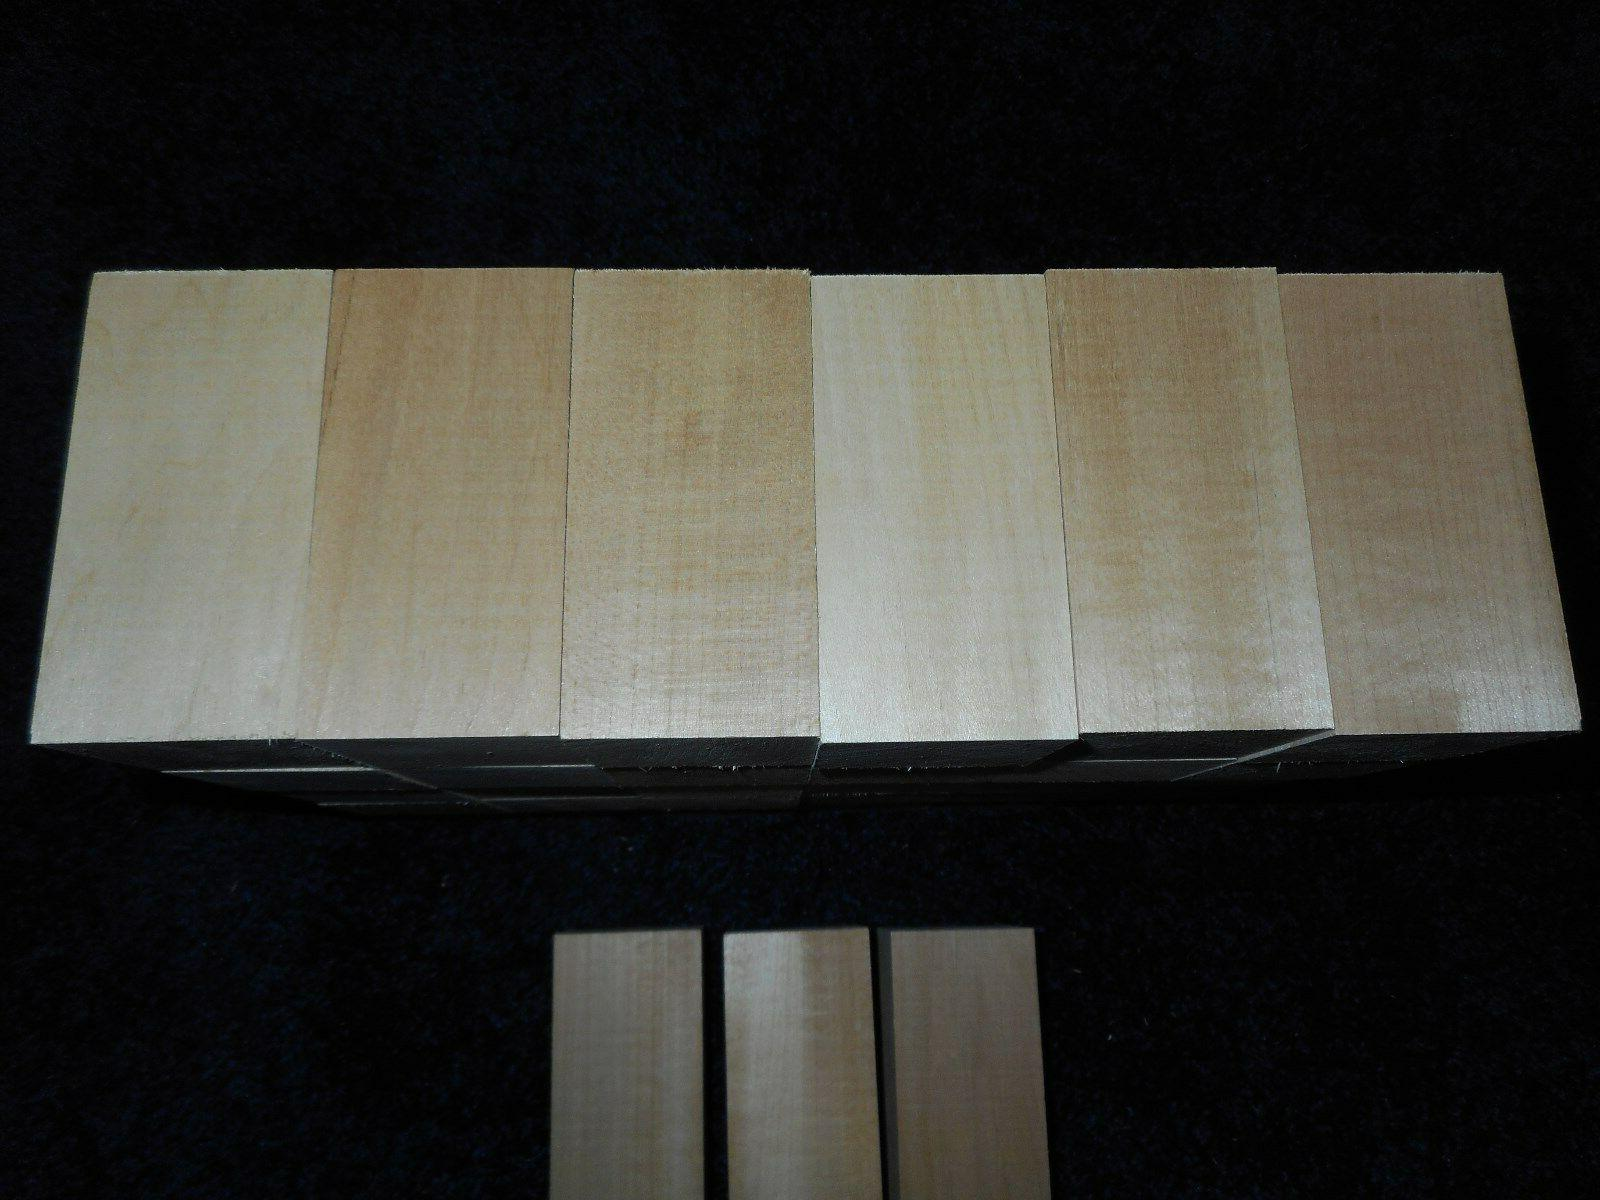 "2"" x 4"" Basswood Blocks Lumber DRIED* BUY IN"